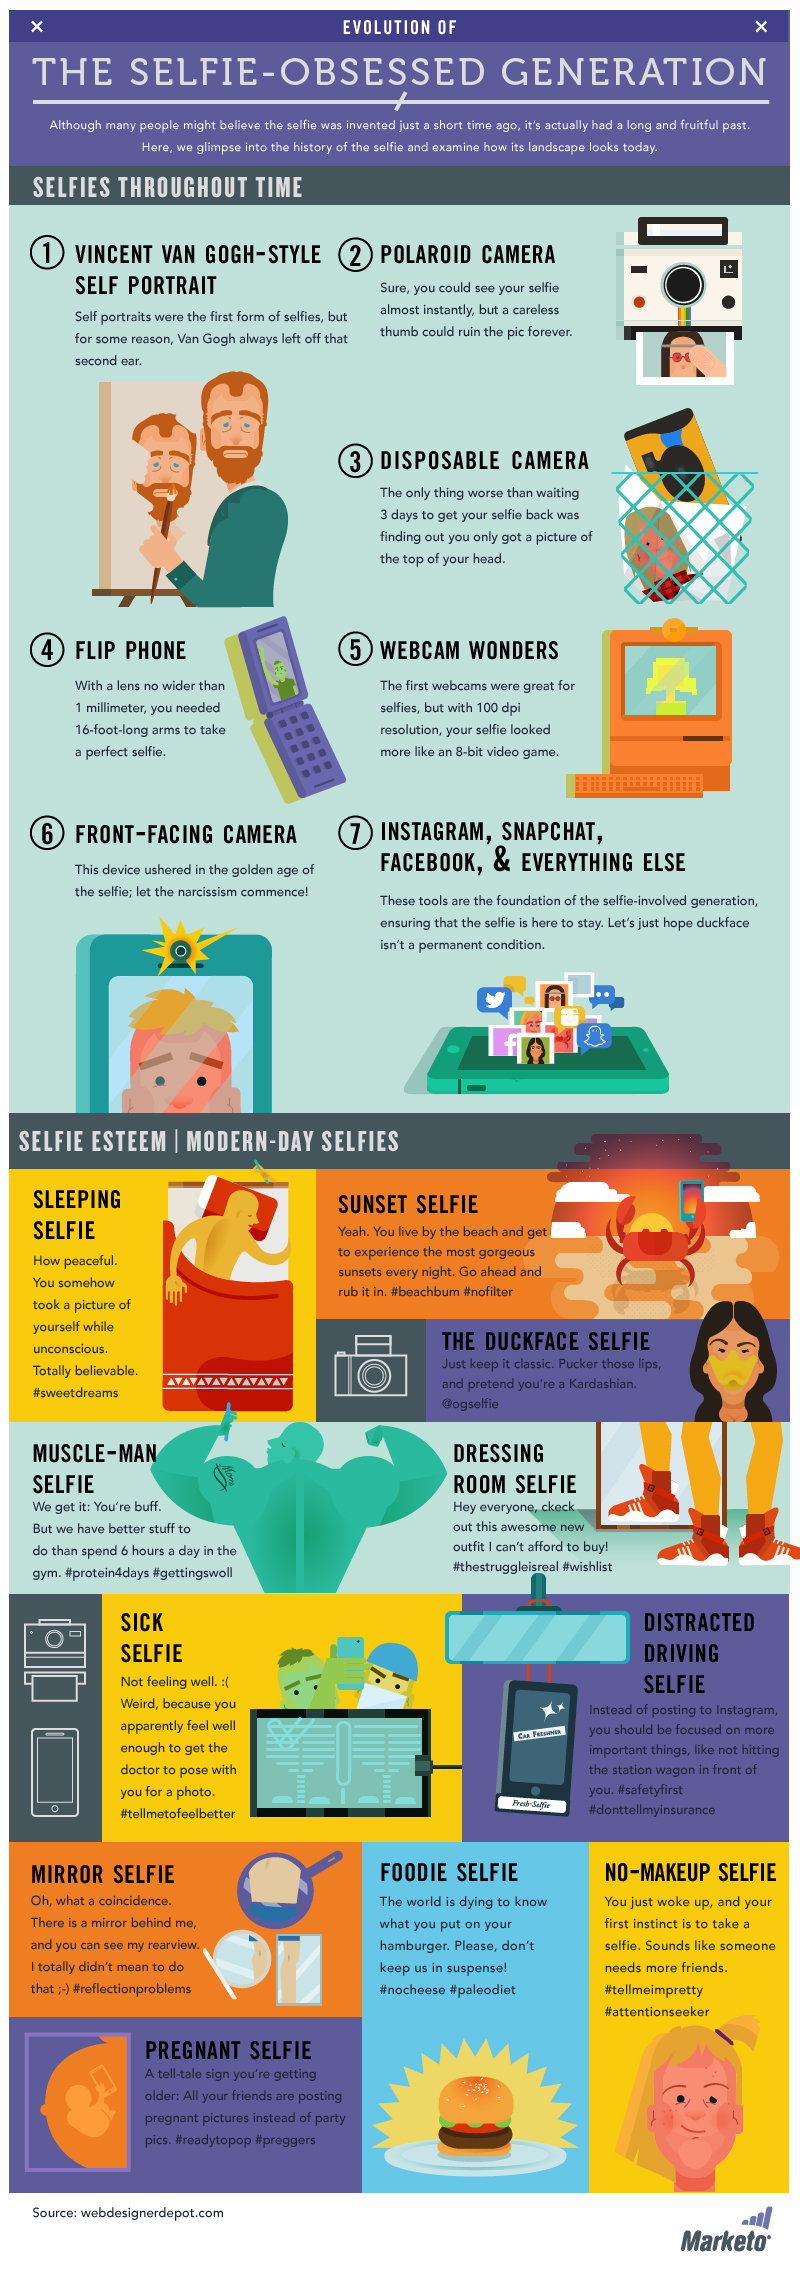 Evolution of the Selfie-Obsessed Generation [Infographic]